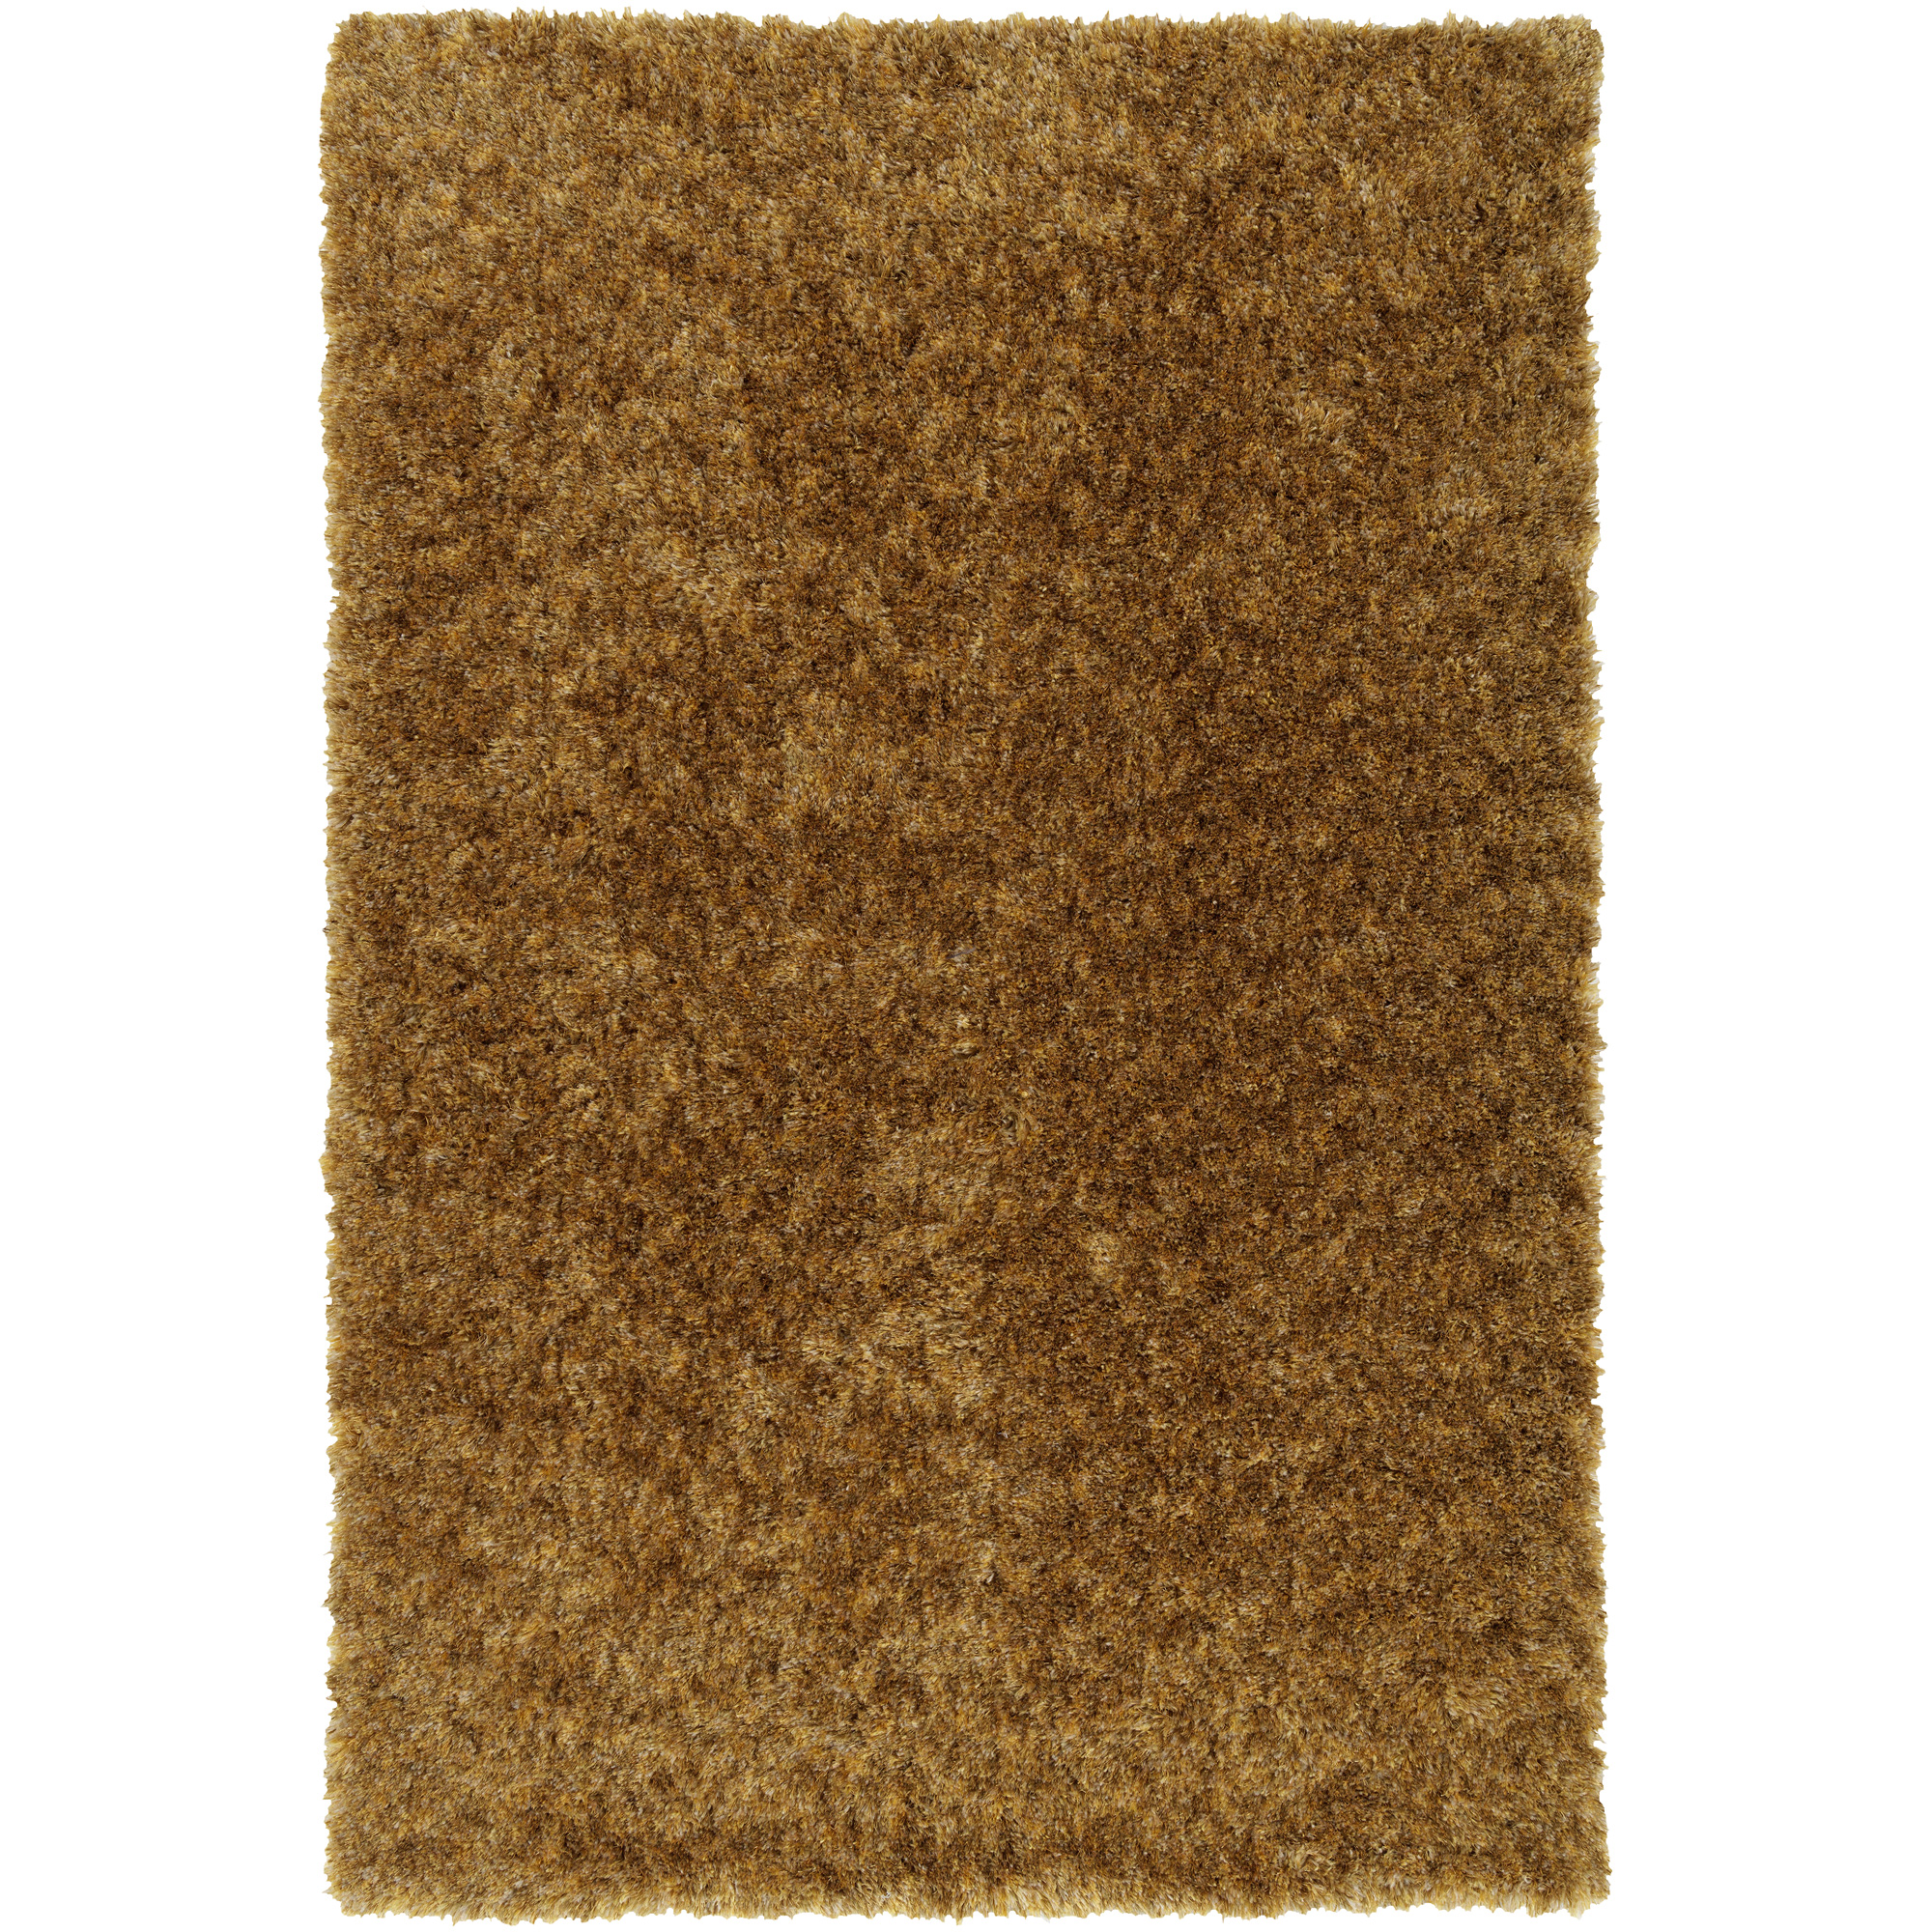 Dalyn Rug | Cabot Gold 8x10 Area Rug